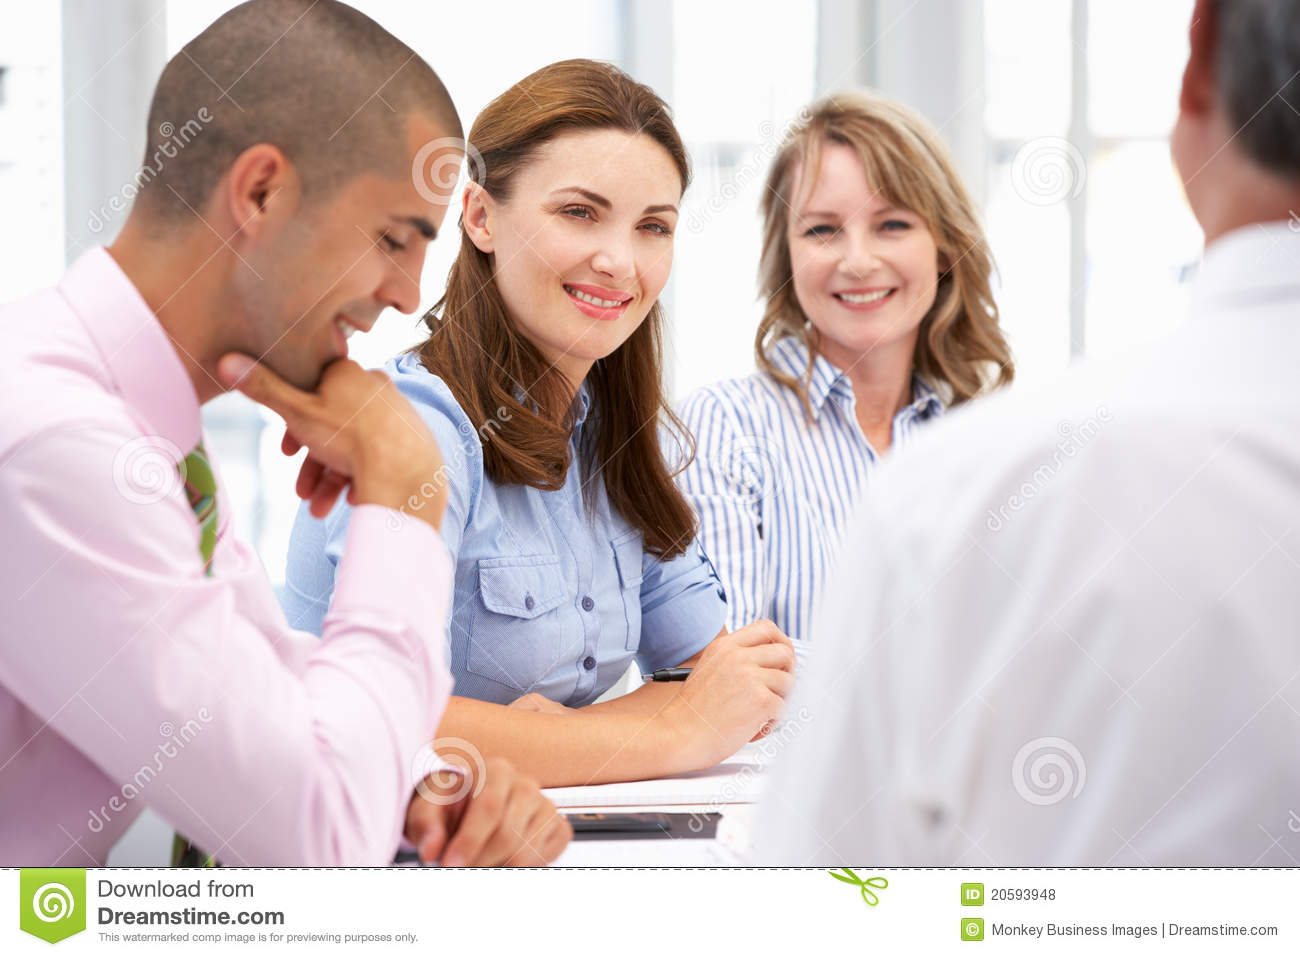 Small Group of Business People in Meeting